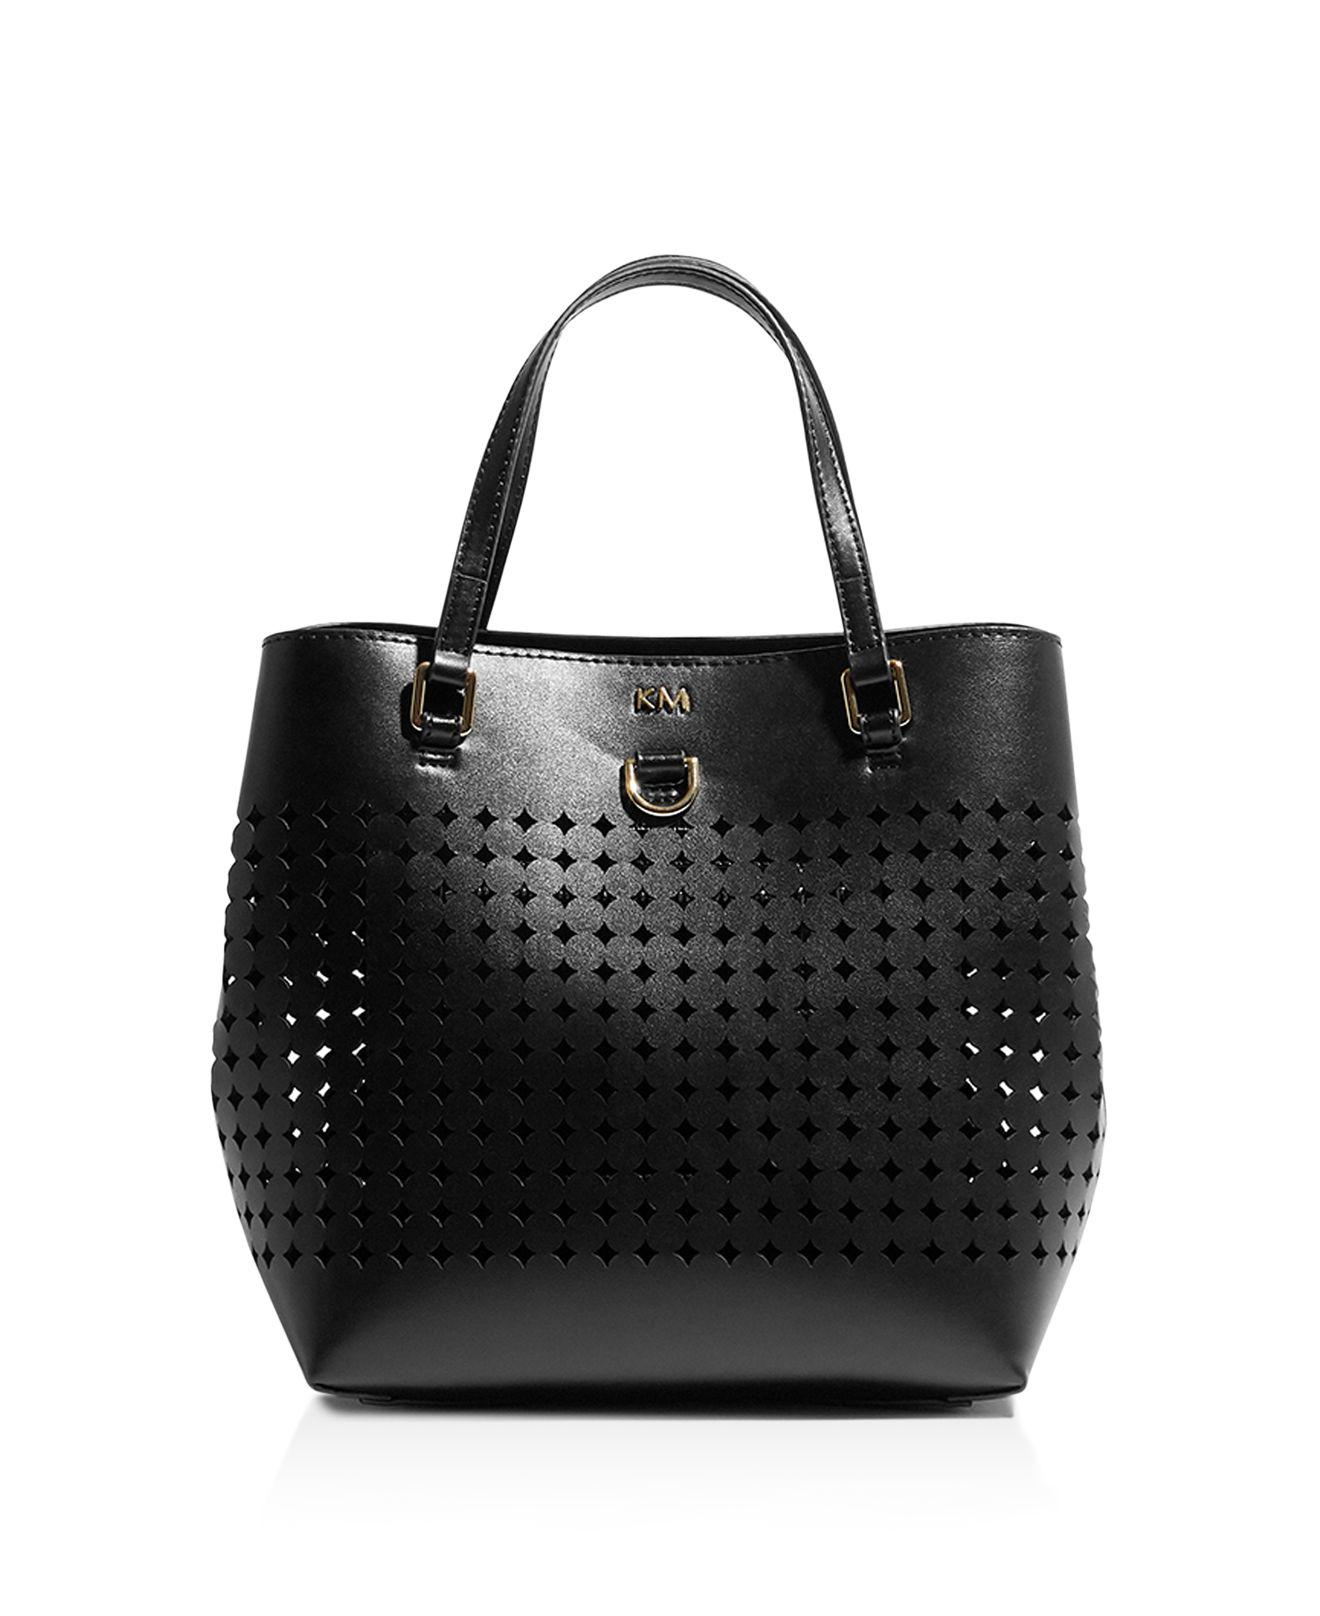 Lyst - Karen Millen Circle Perforated Medium Tote in Black 3a91fe12face9